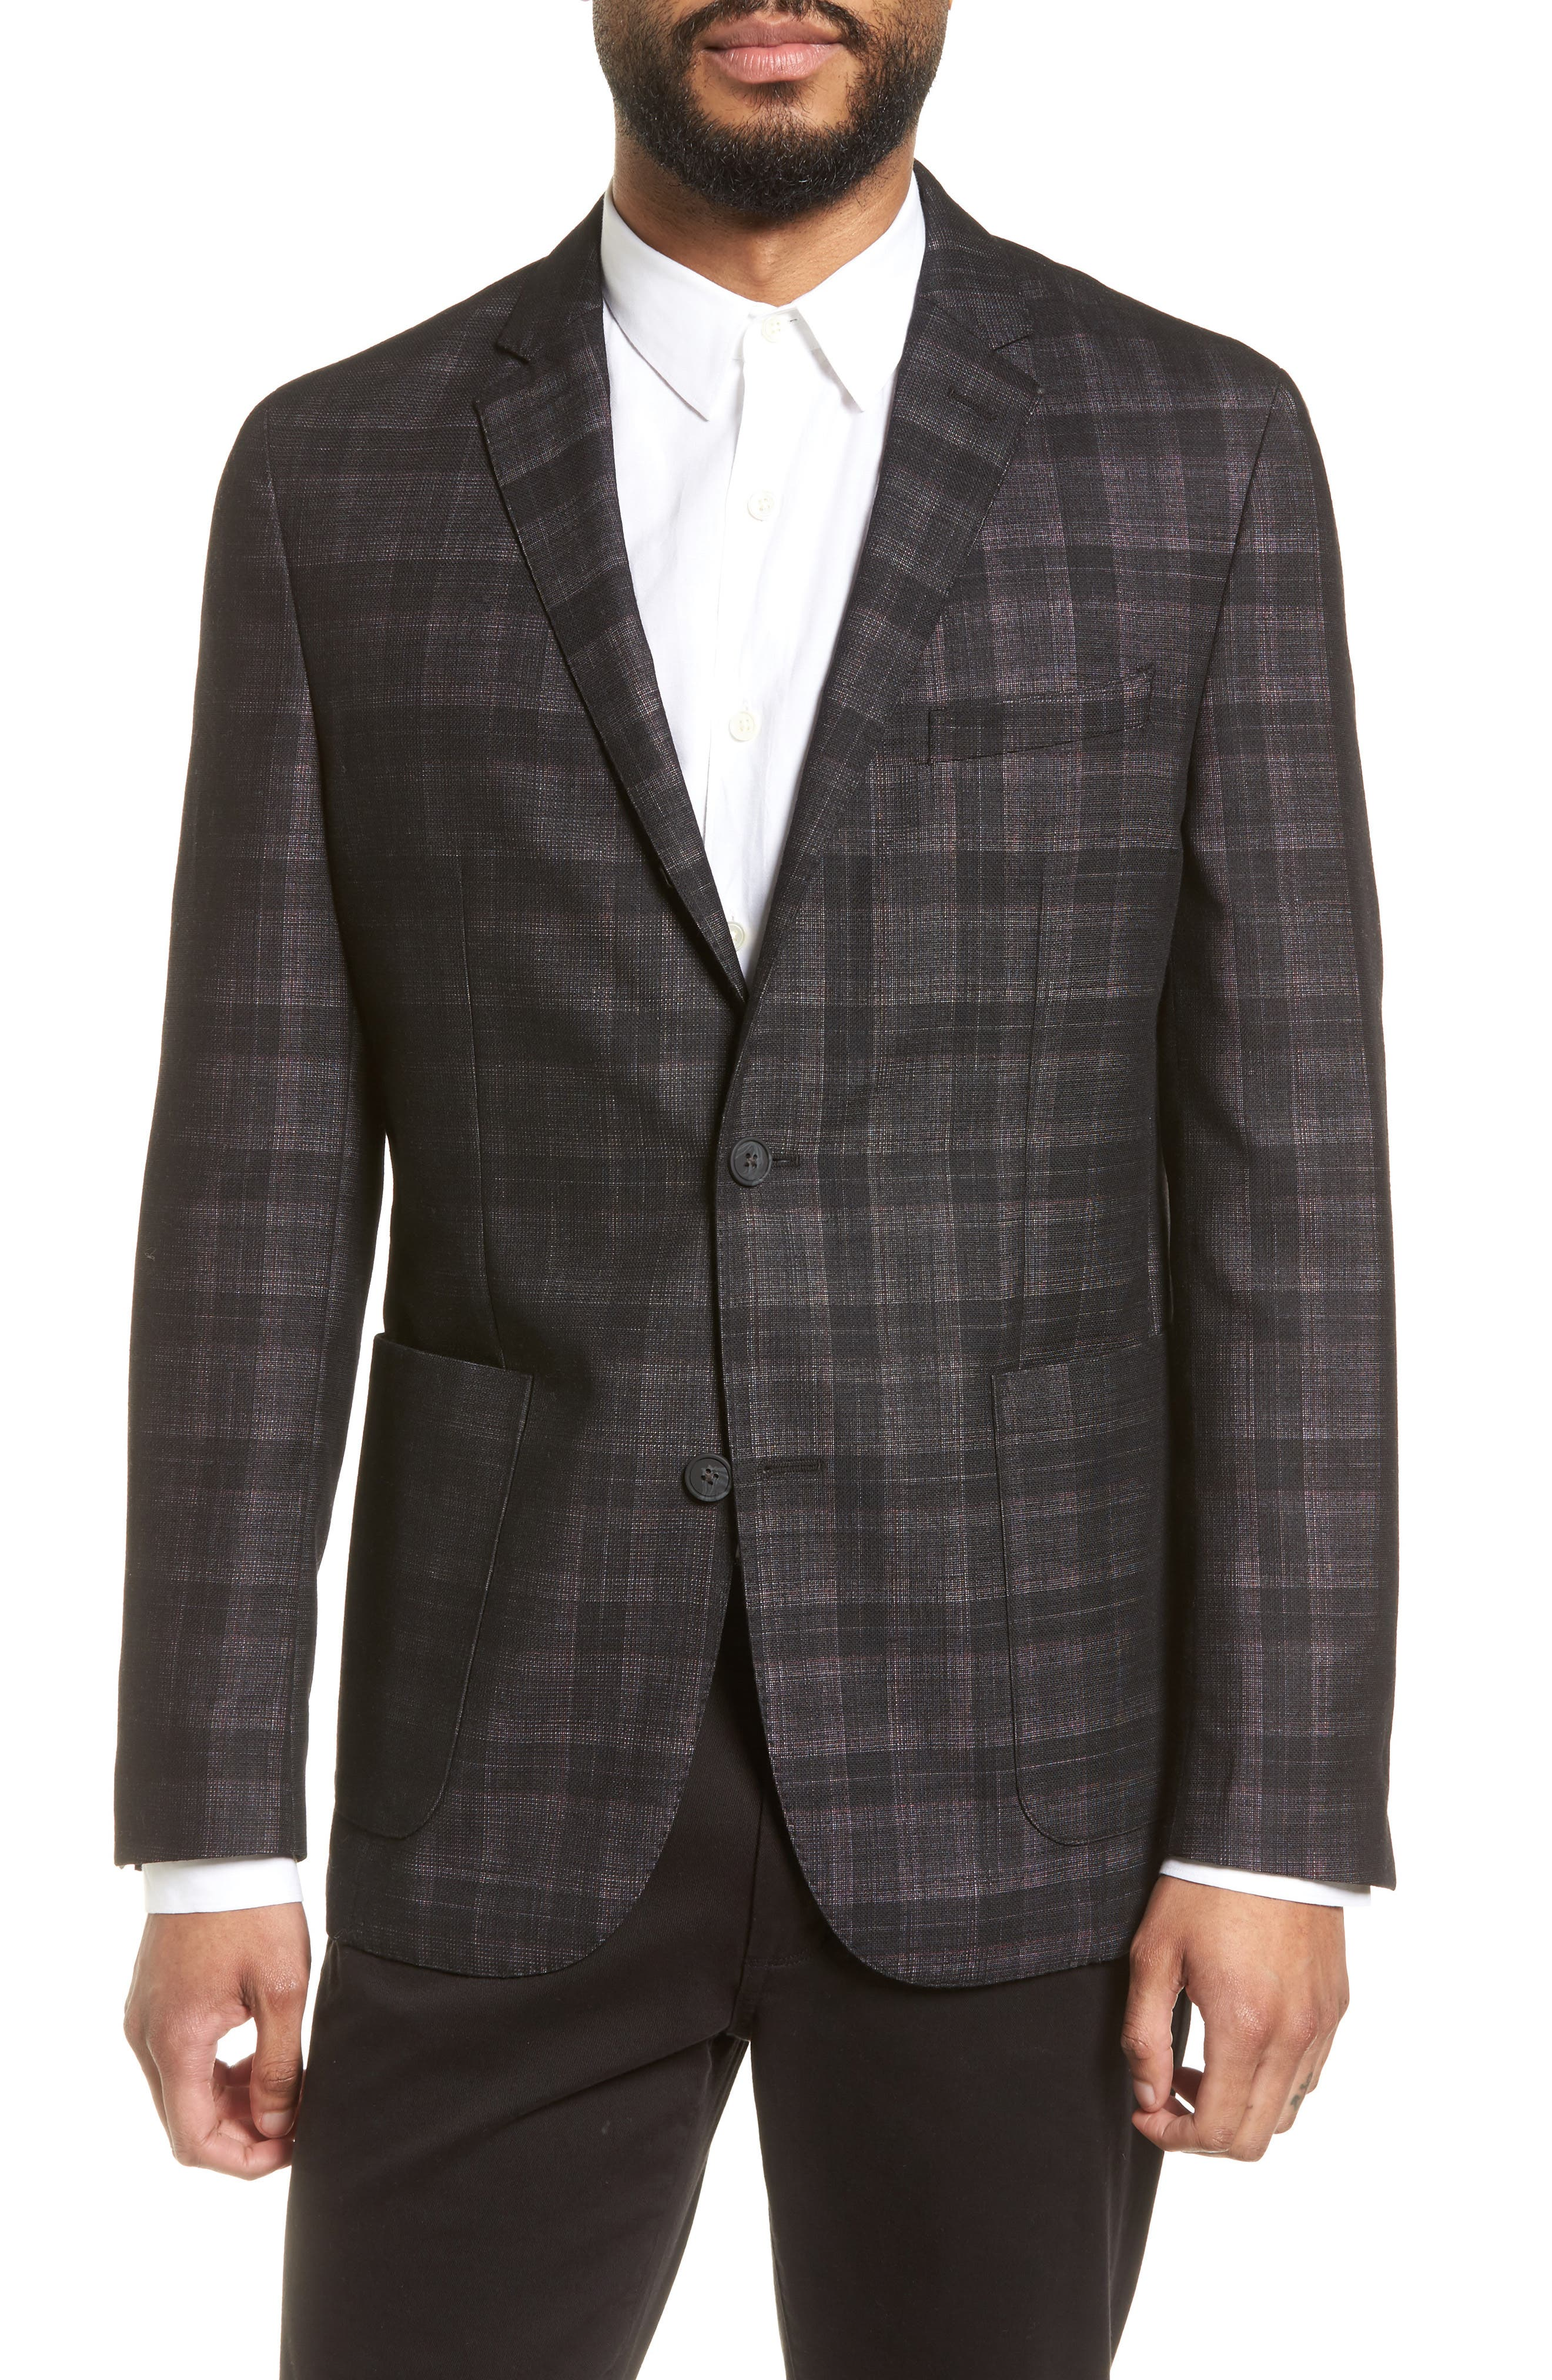 Delaria Plaid Wool Blend Jacket,                         Main,                         color, 001